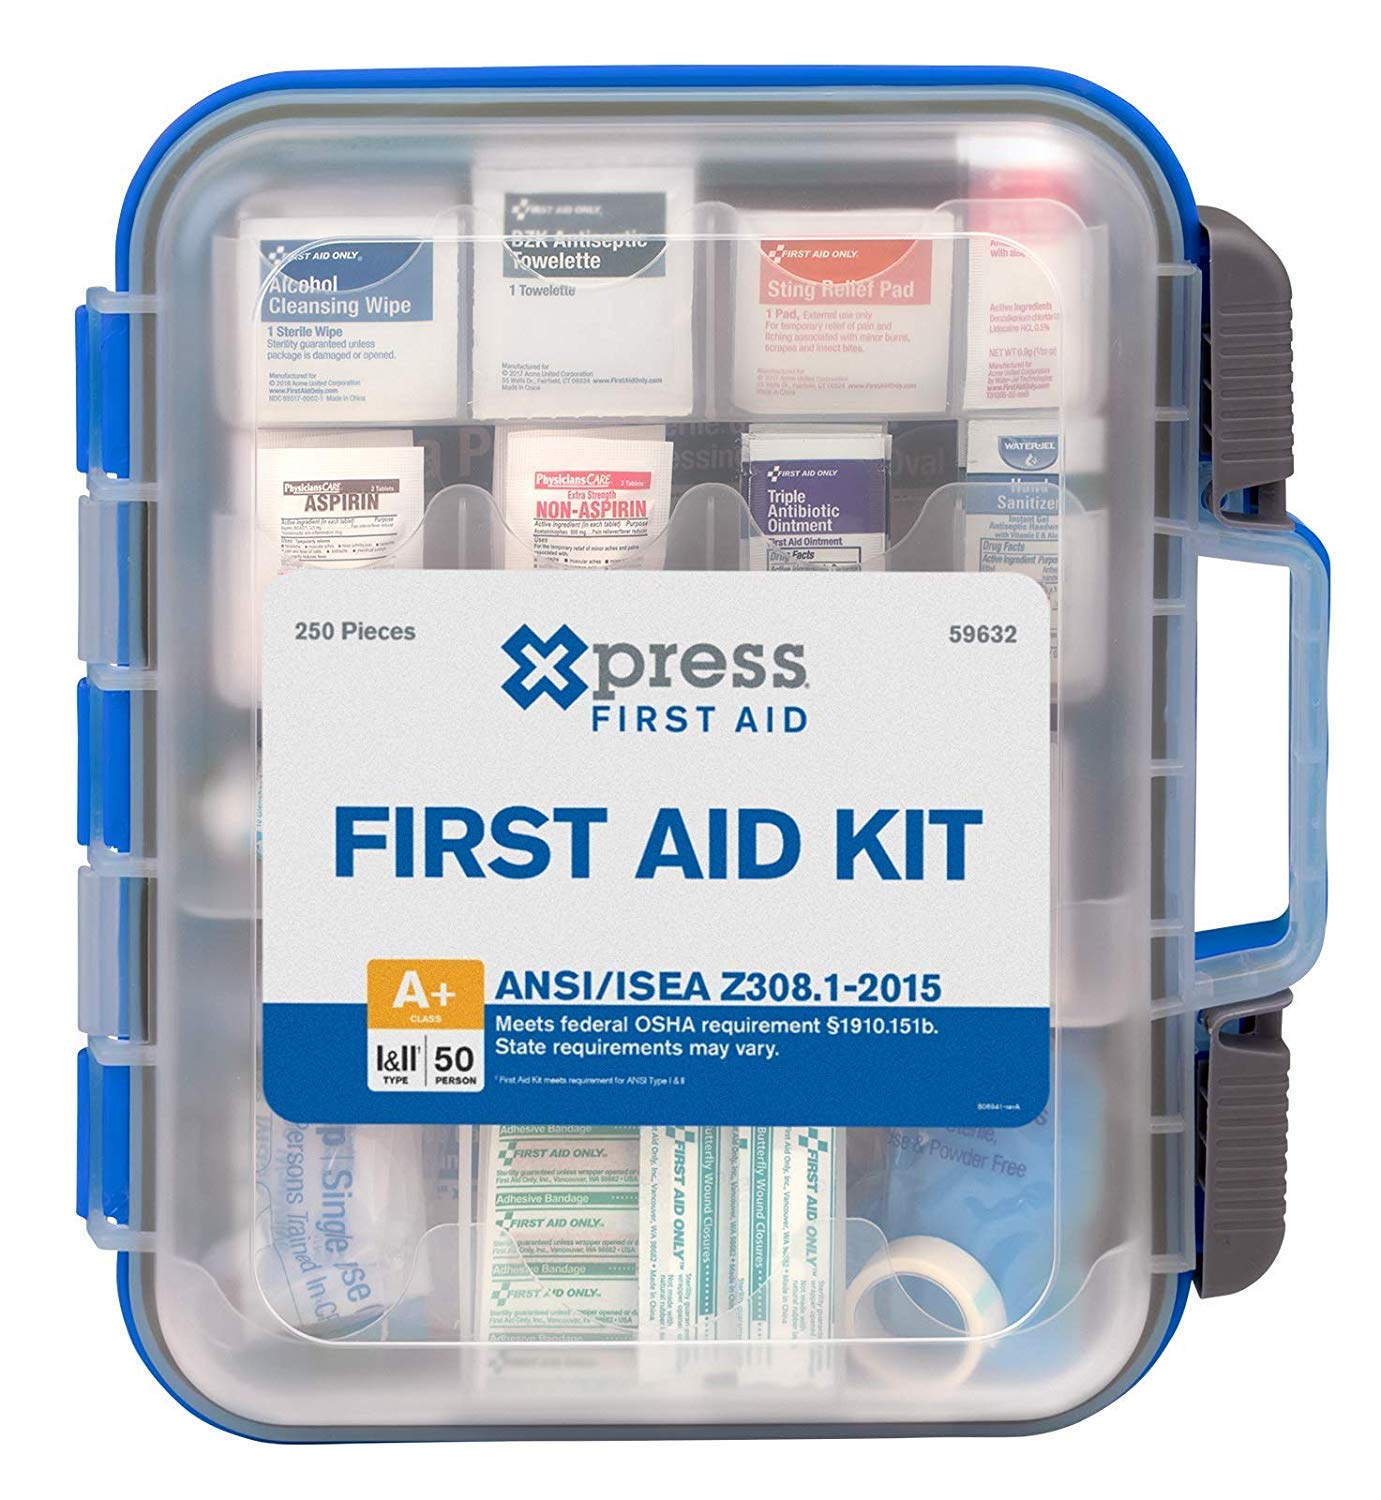 Xpress First Aid 250 Piece First Aid Kit, ANSI/OSHA Compliant by Xpress First Aid